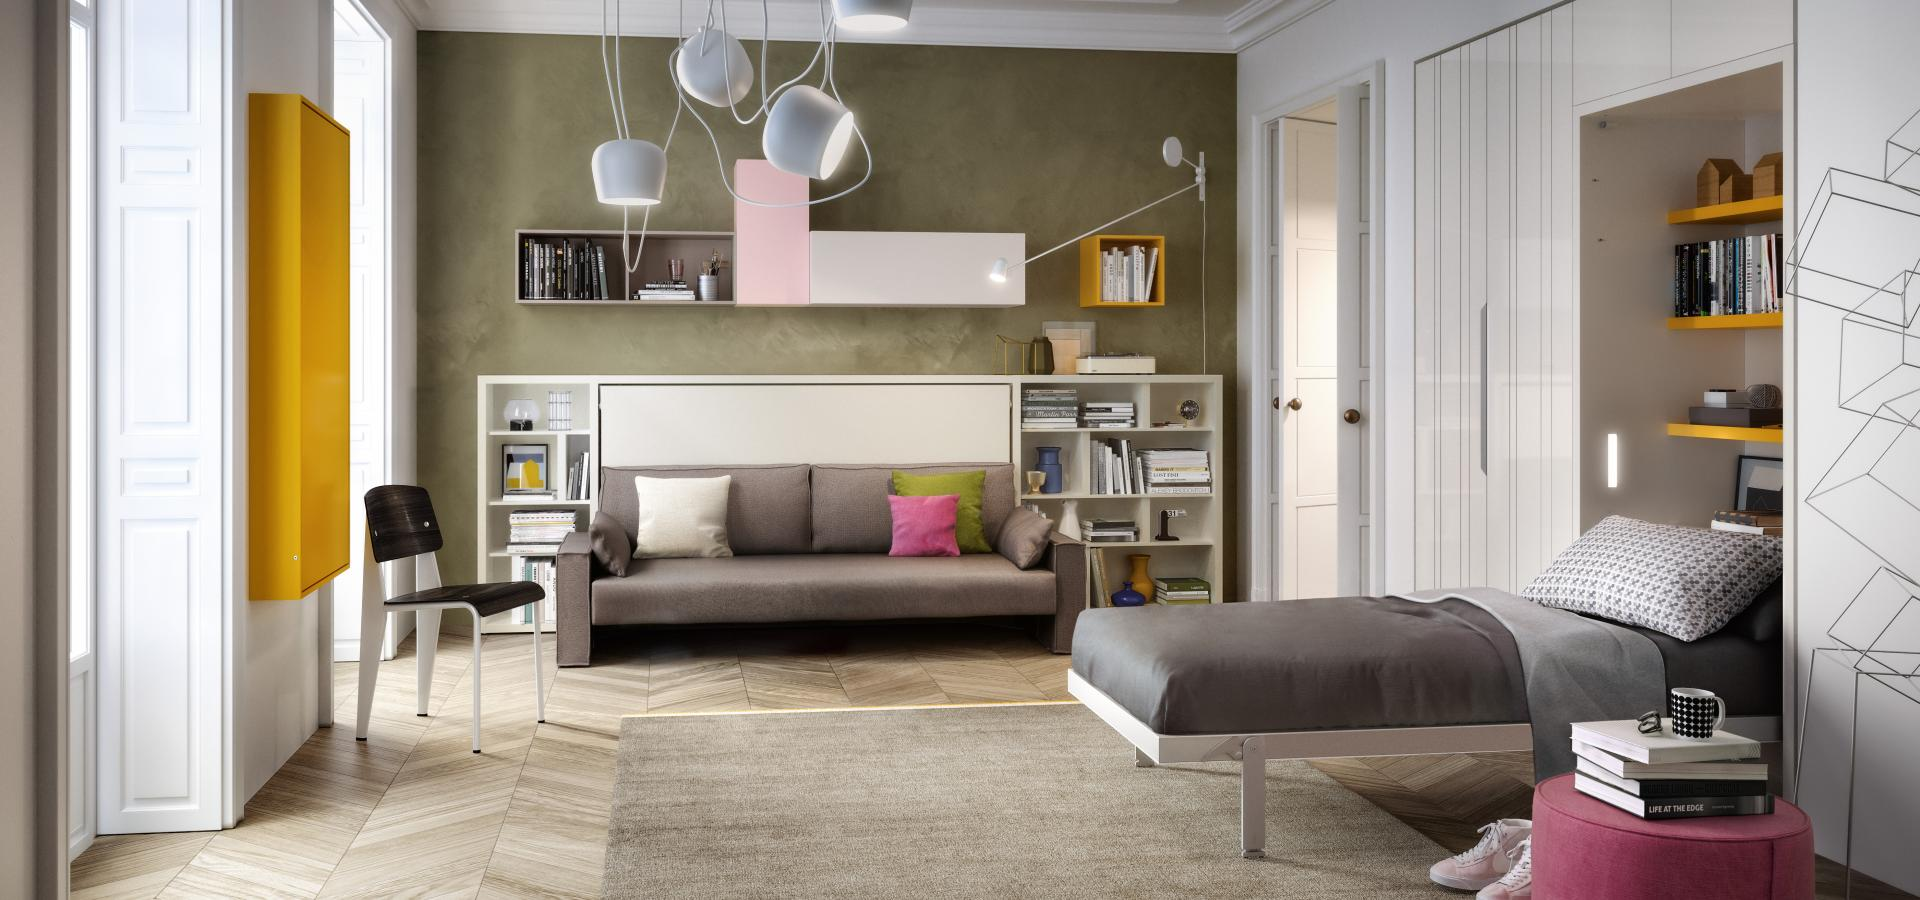 Clei - Kali Sofa 120+Altea Book 90 Stand